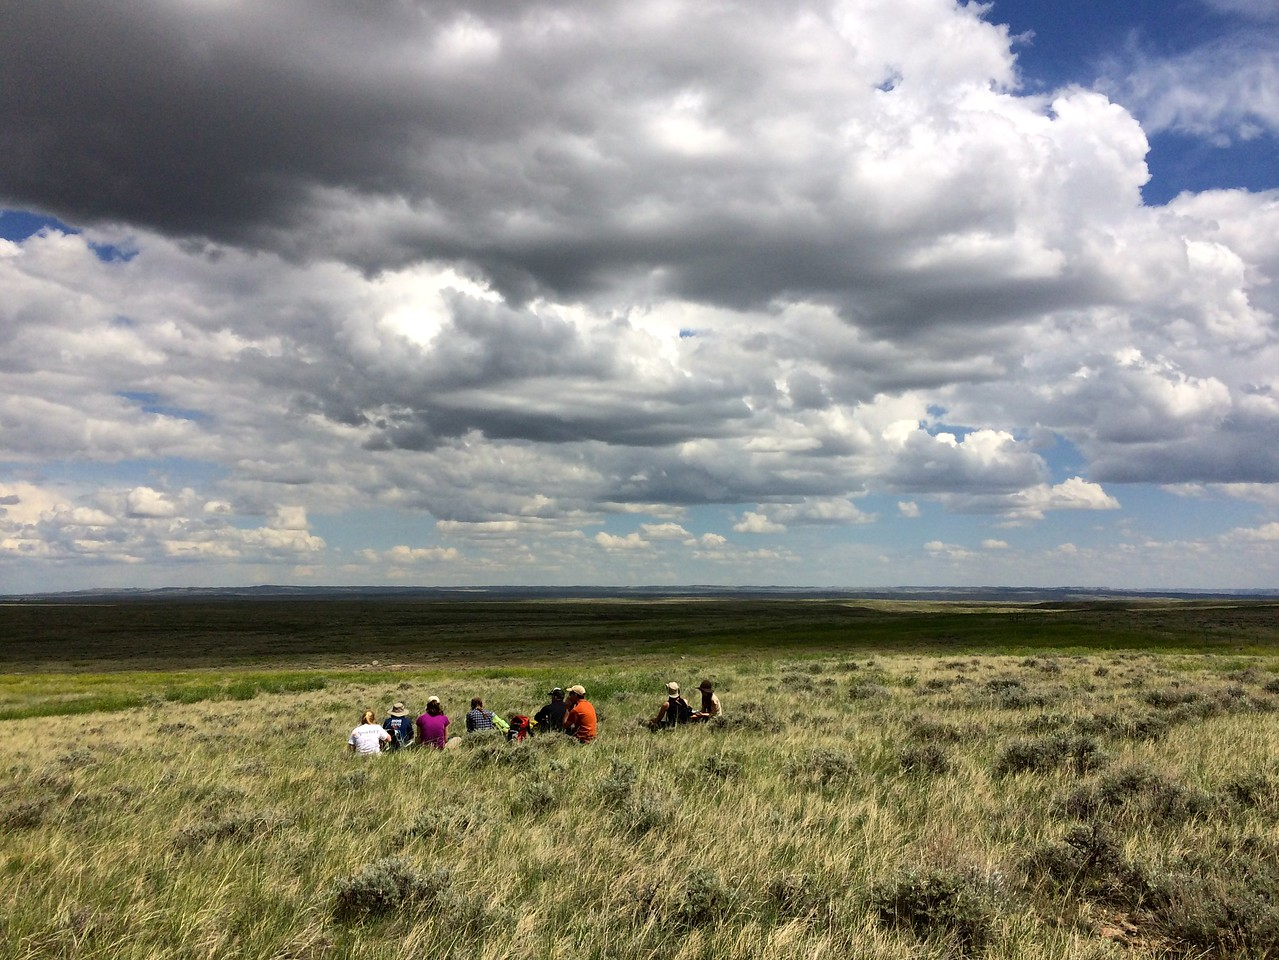 """The Adventurers and Scientists for Conservation Landmark crew takes a lunch break during a training hike. The crew walks 10 miles a day to collect data on wildlife including mule deer, bison, elk and sage grouse for the American Prairie Reserve. Learn more about becoming an adventure scientist at  <a href=""""http://www.adventurescience.org/landmark"""">http://www.adventurescience.org/landmark</a>"""